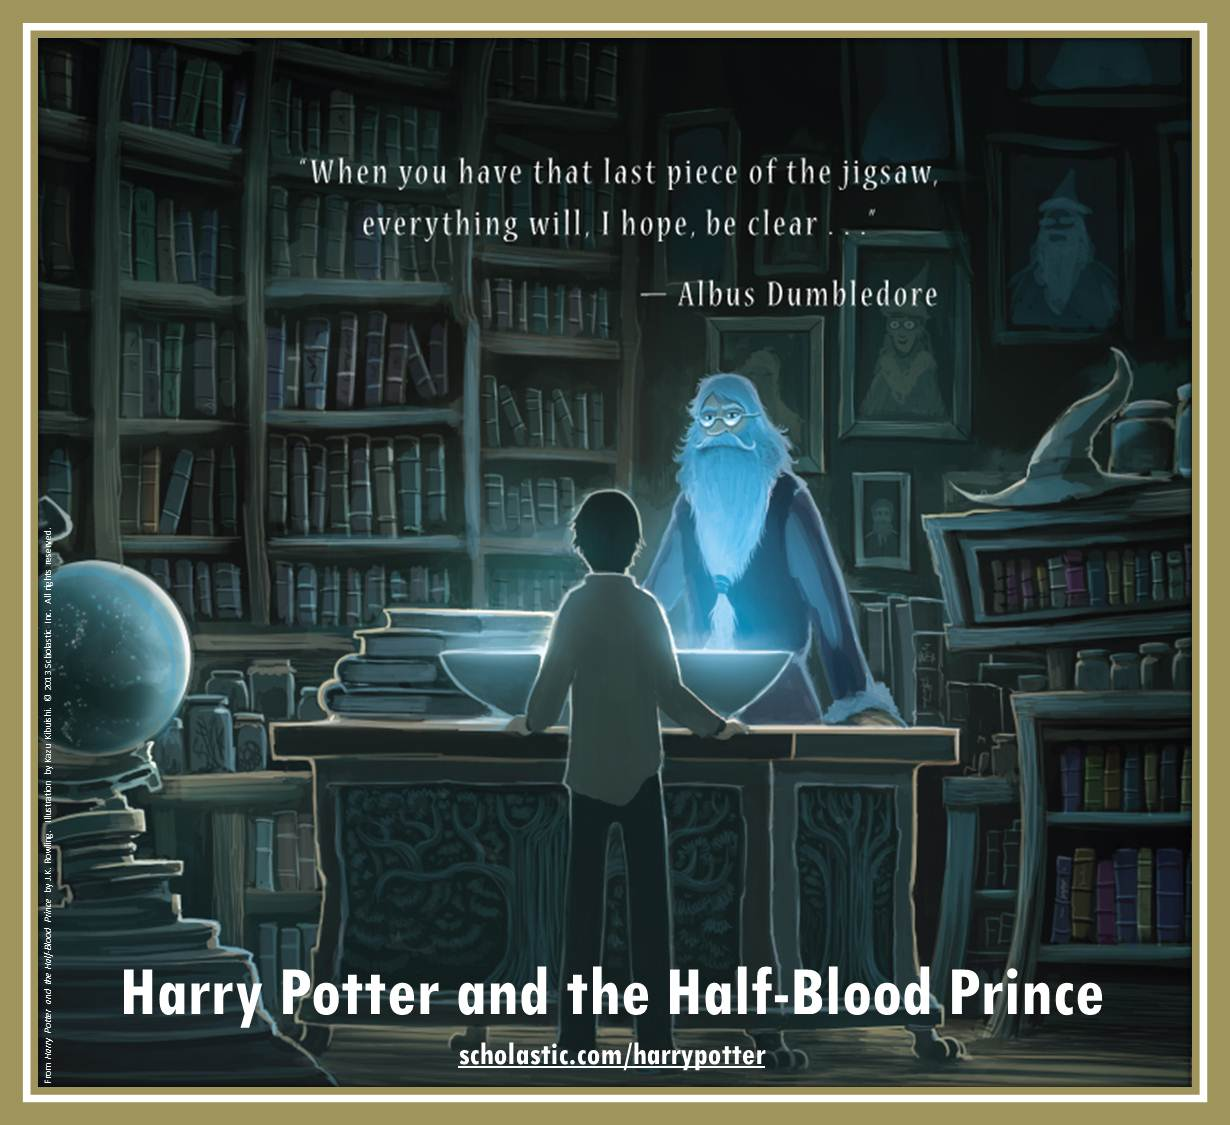 Harry Potter and the Half-Blood Prince back cover by Kazu Kibuishi